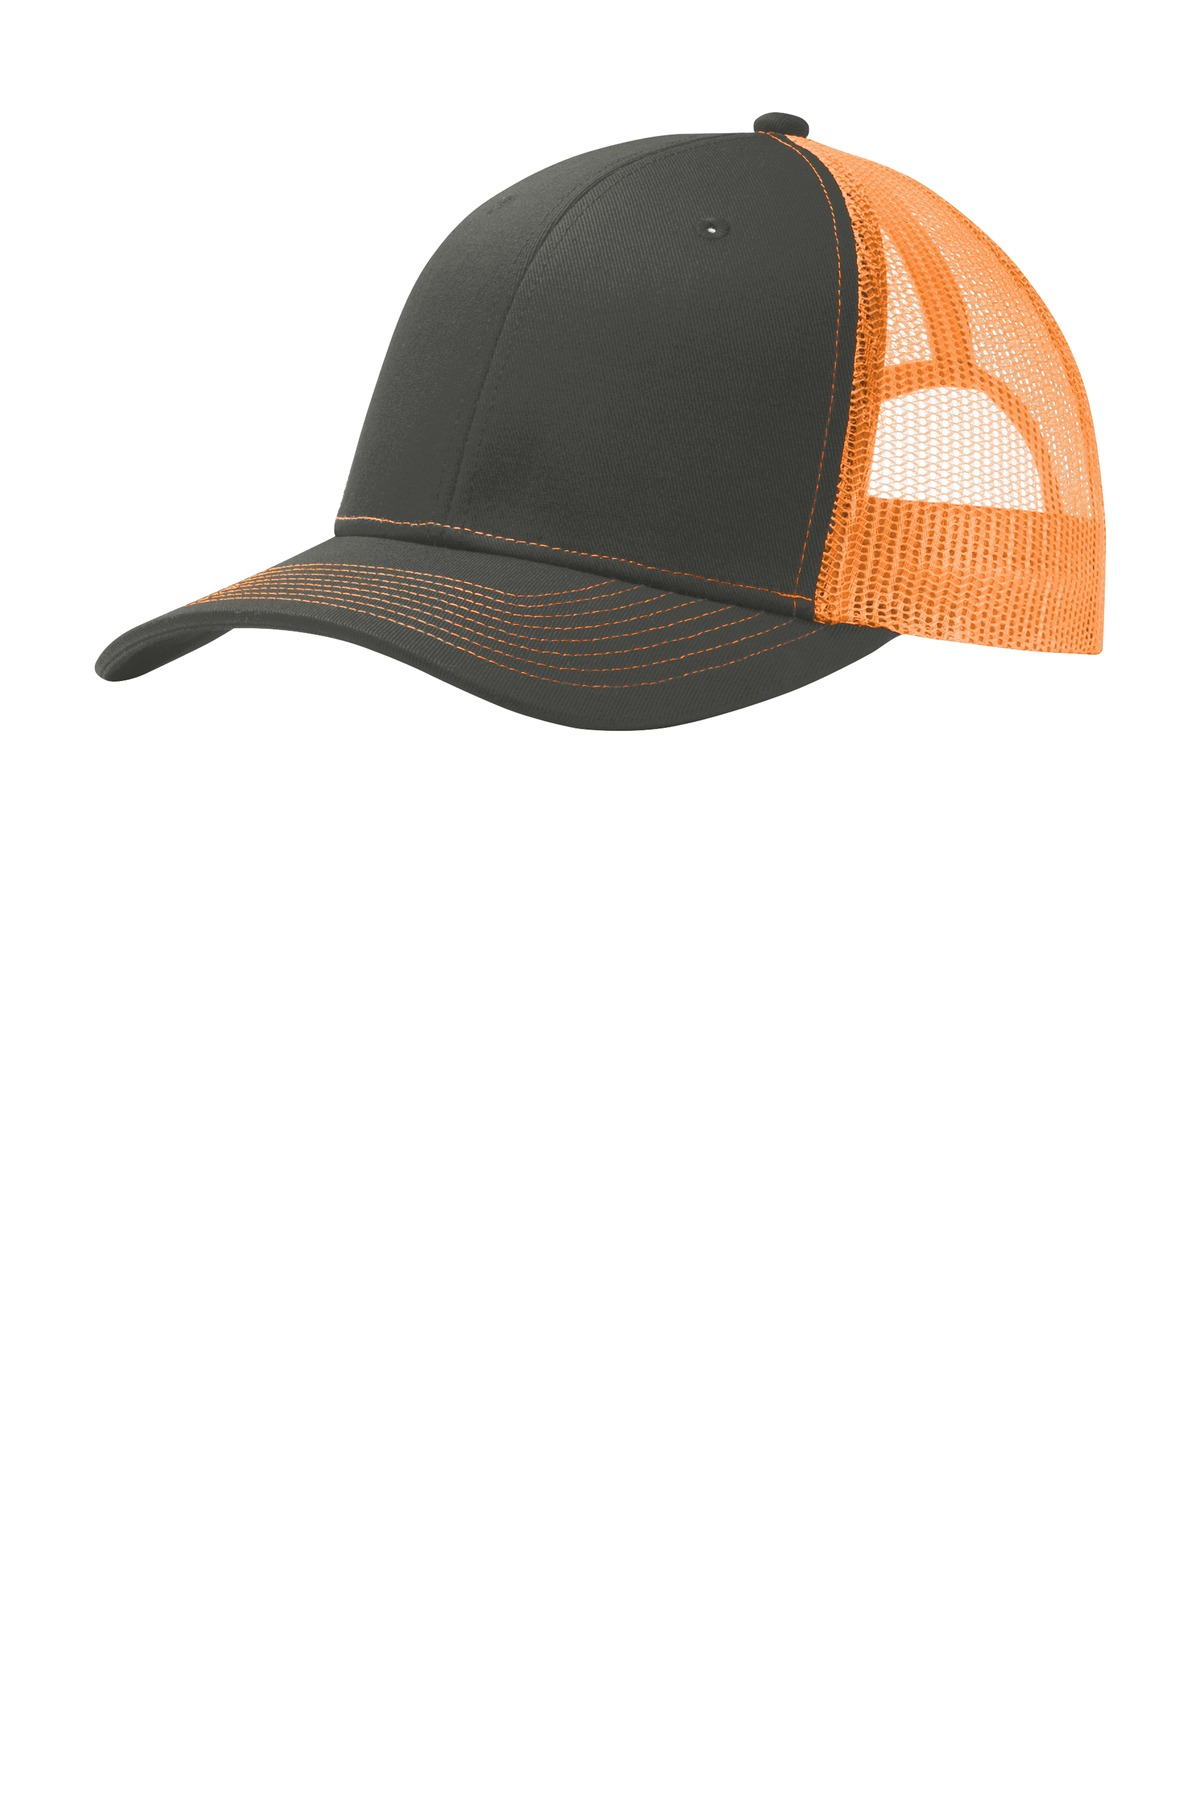 Port Authority ®  Snapback Trucker Cap. C112 - Grey Steel/ Neon Orange